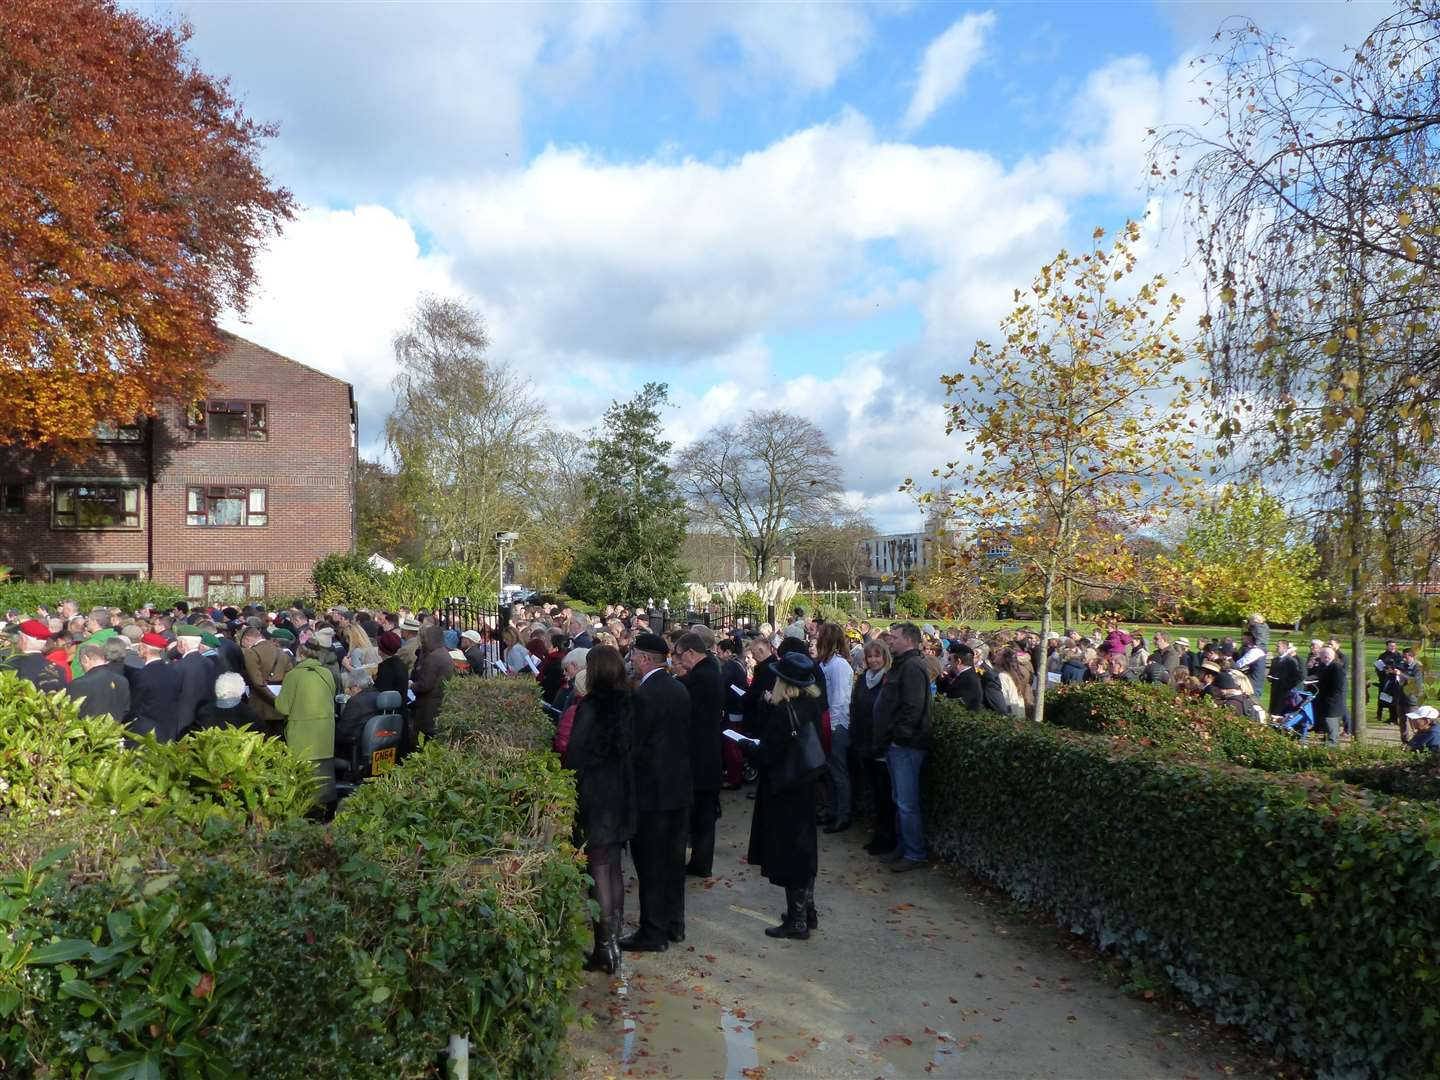 Andy Clark photographed overcrowding at the Ashford Remembrance Sunday service last year